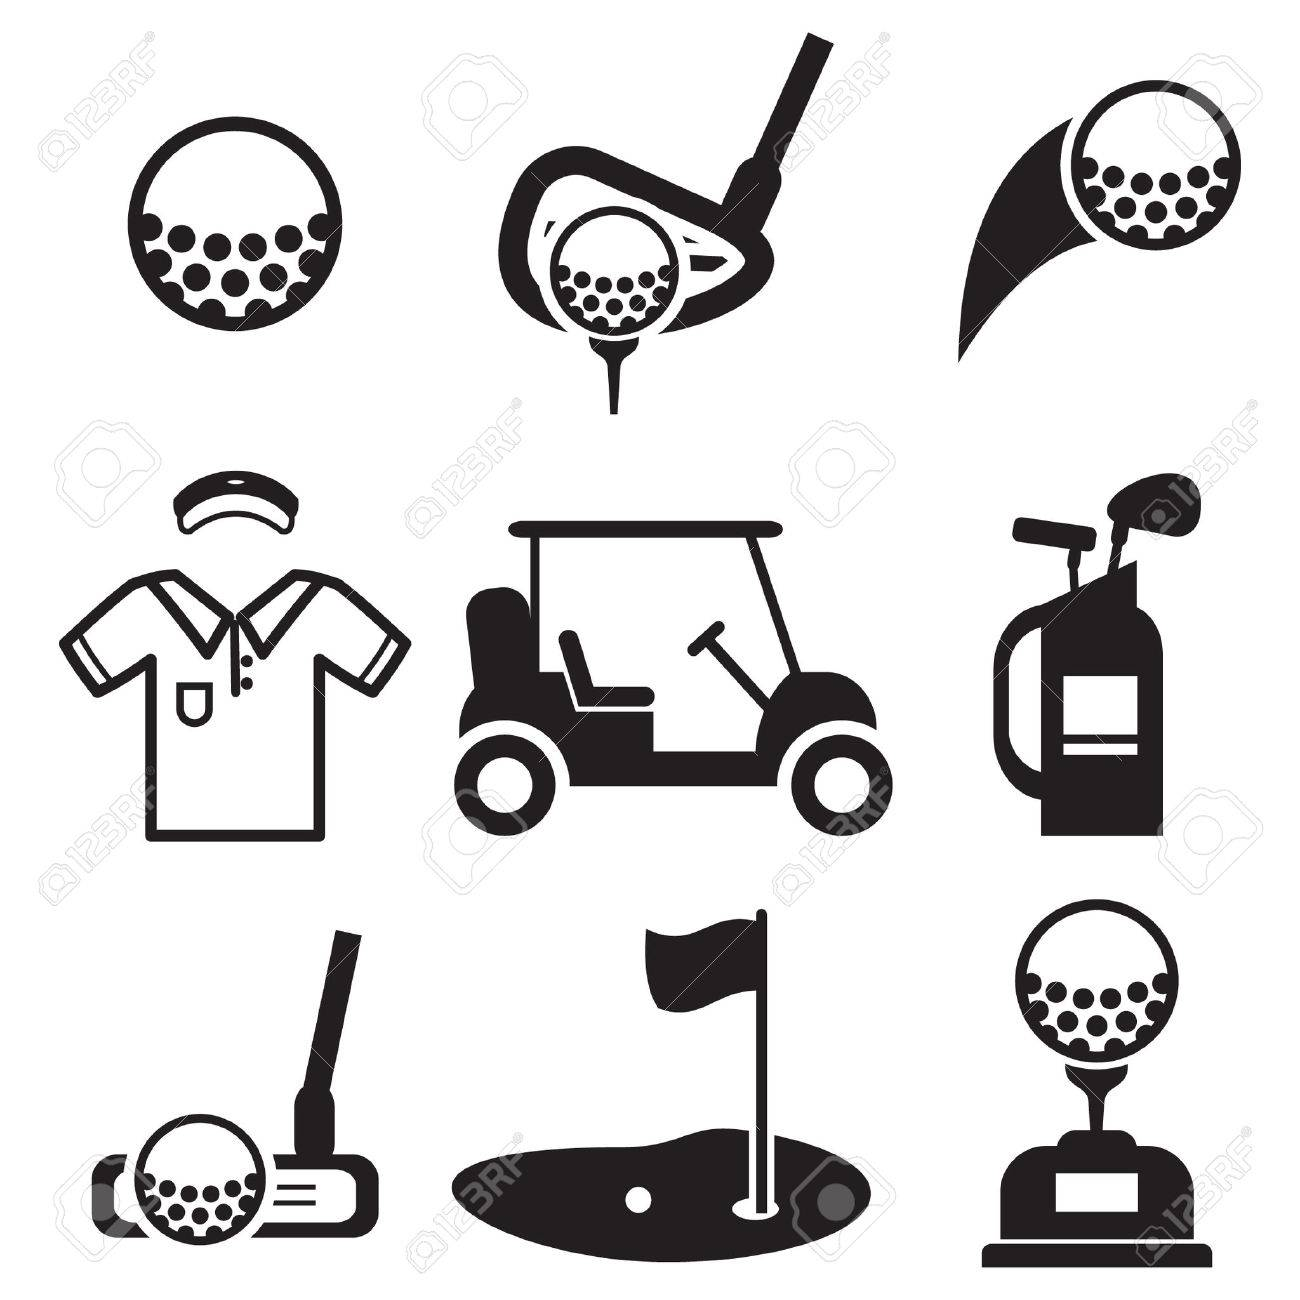 golf icons royalty free cliparts vectors and stock illustration rh 123rf com golf vector pro golf vector free